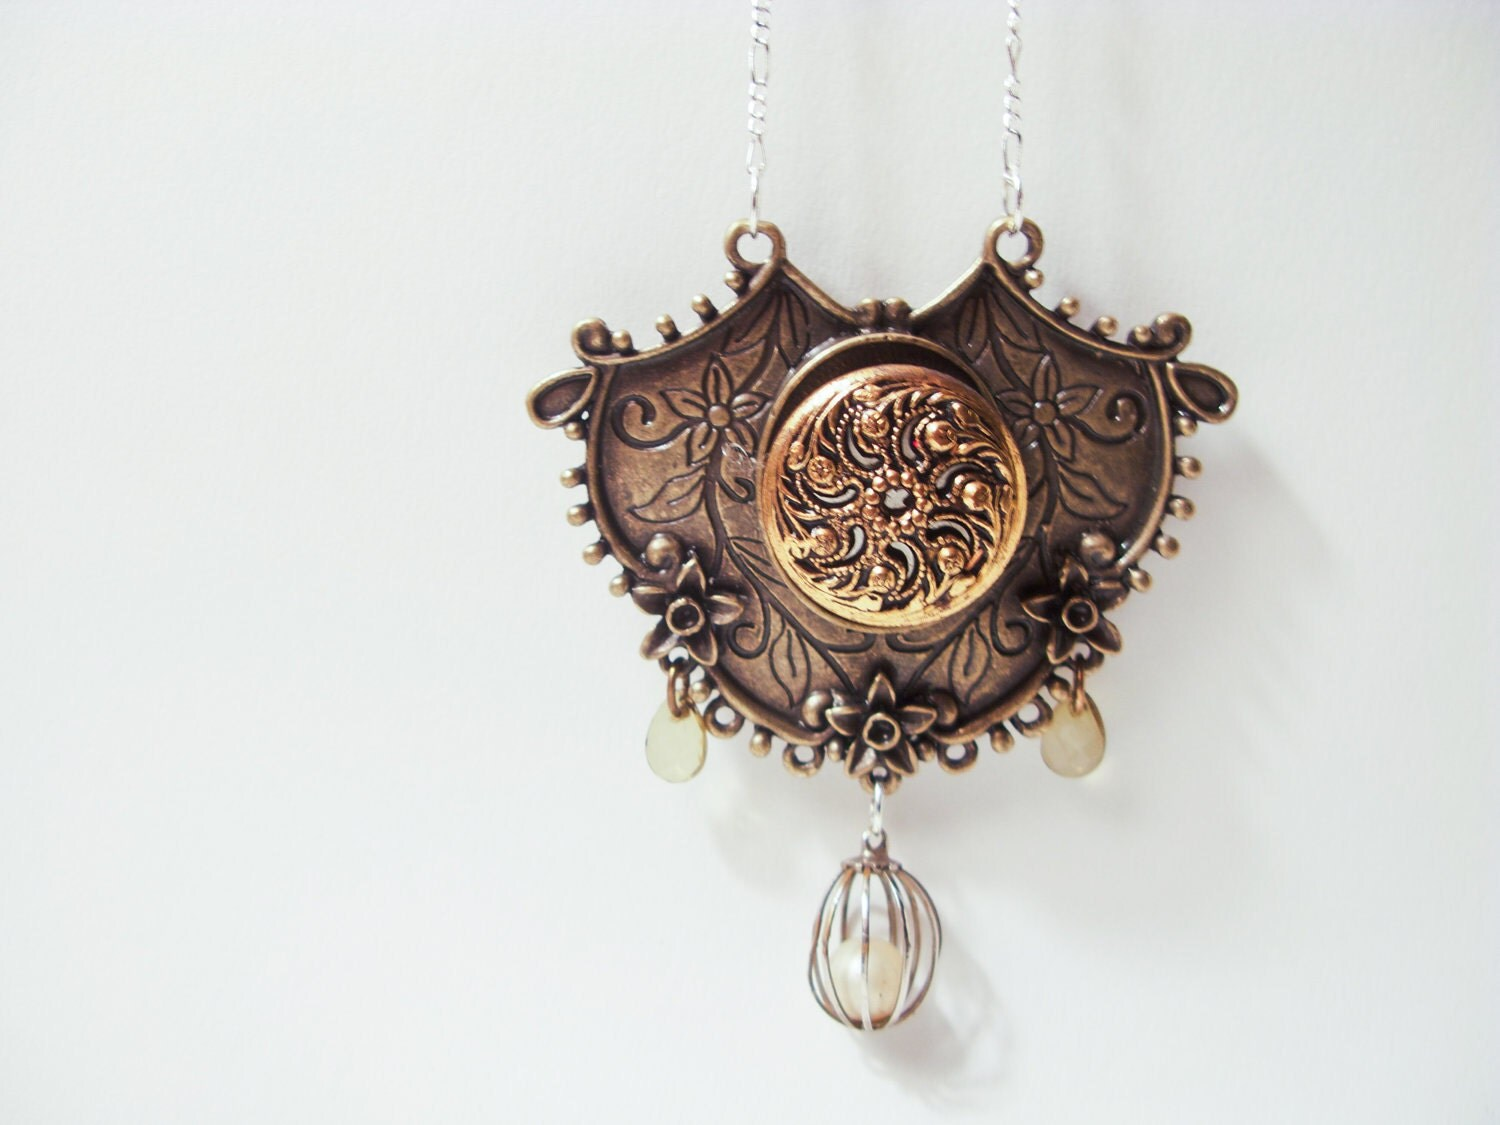 OOAK BOHO VICTORIAN: Ornate Statement Mixed Media Necklace In Brass With Antique Button - ephemeralpillages